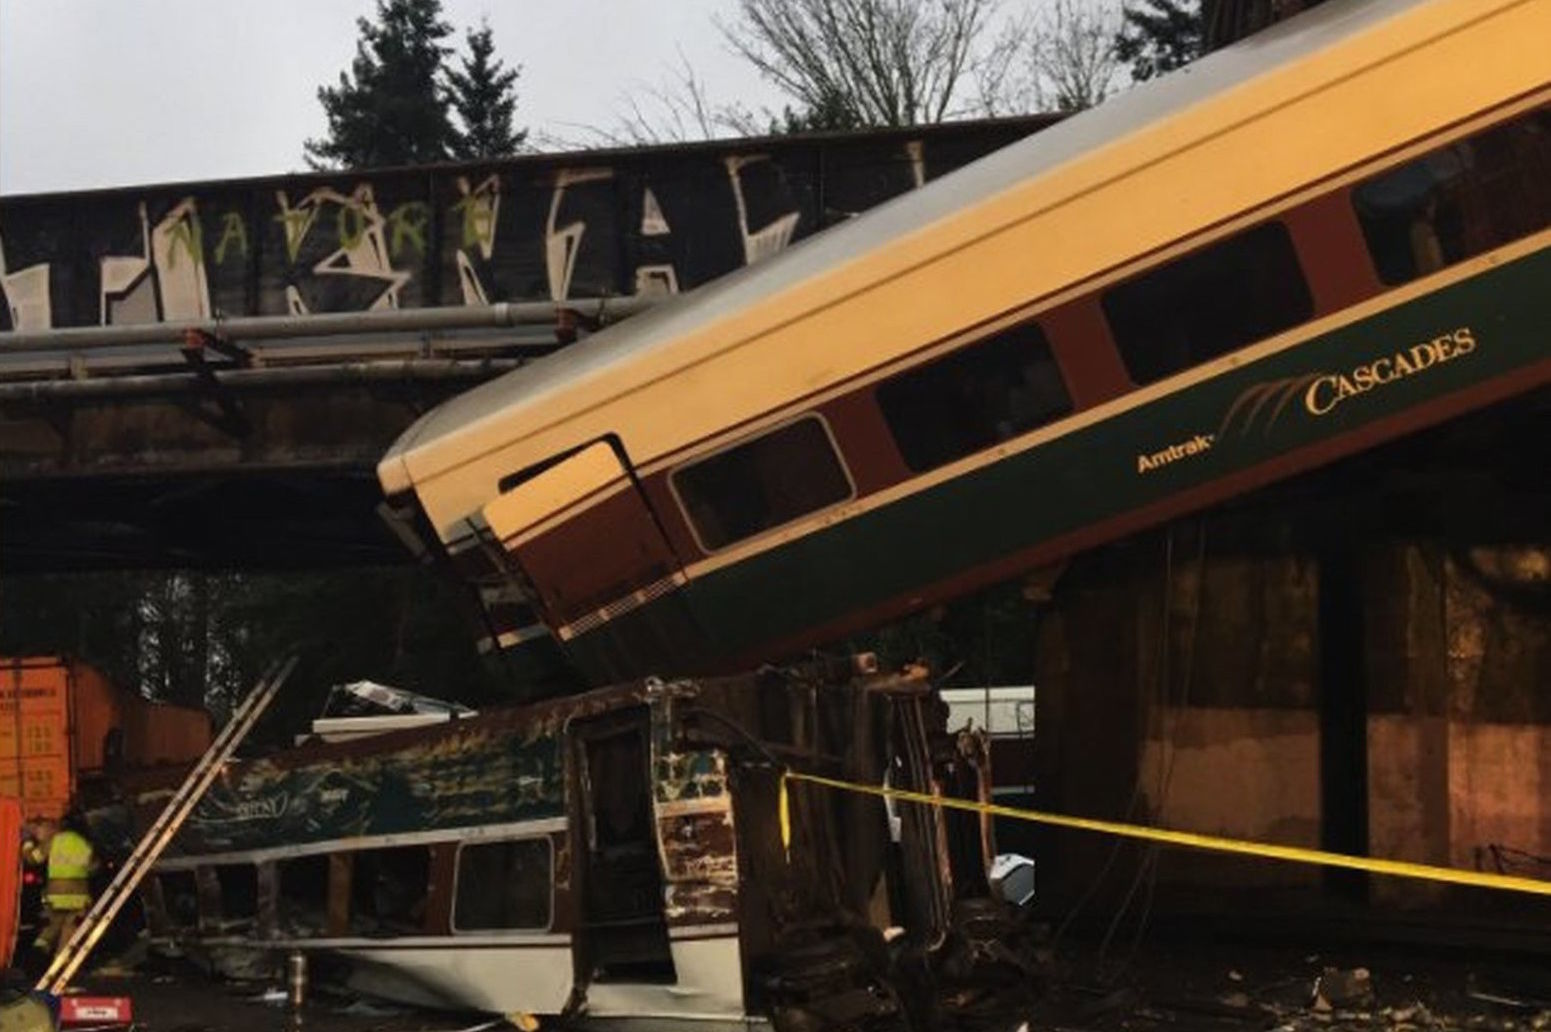 Wsdot train derailed vcecco